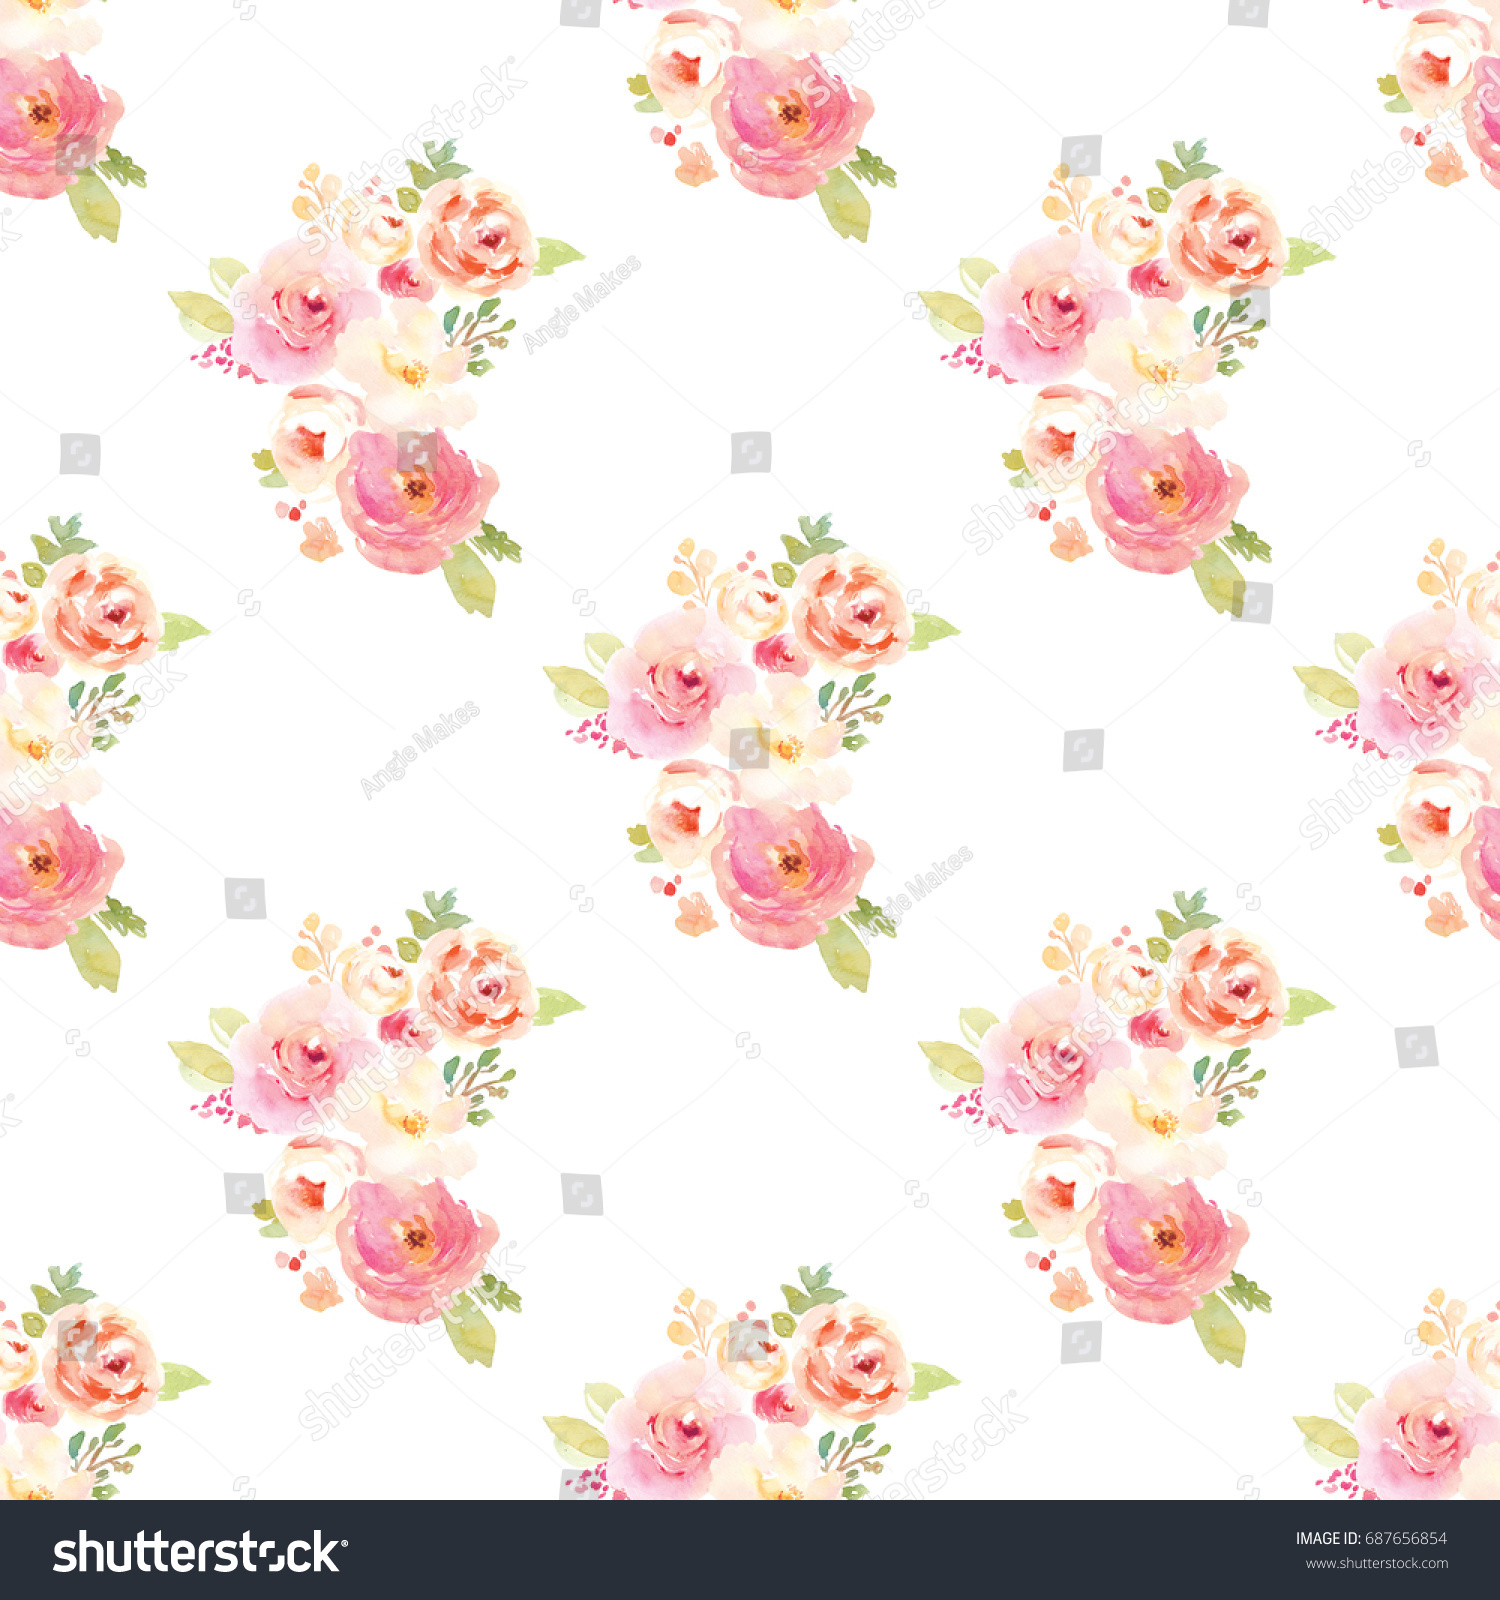 Cute Vintage Watercolor Flower Pattern Floral Wallpaper